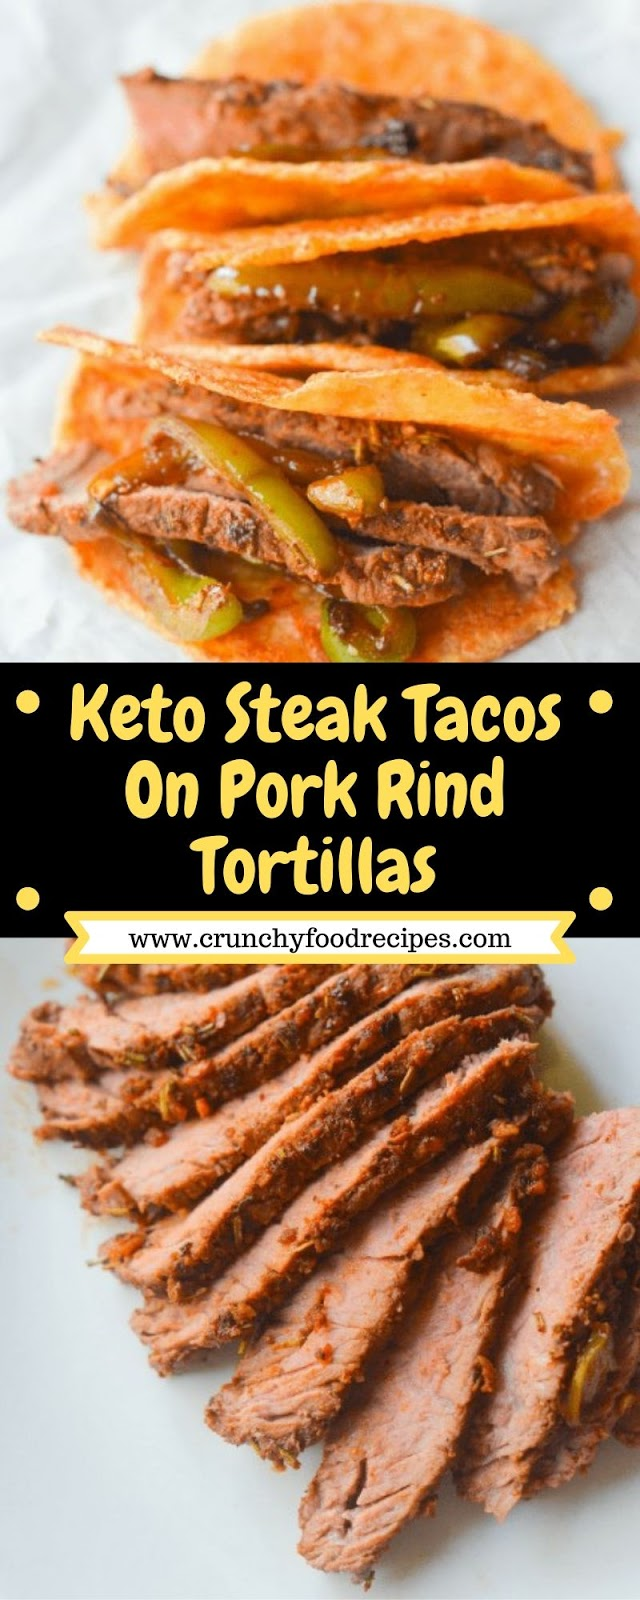 Keto Steak Tacos On Pork Rind Tortillas